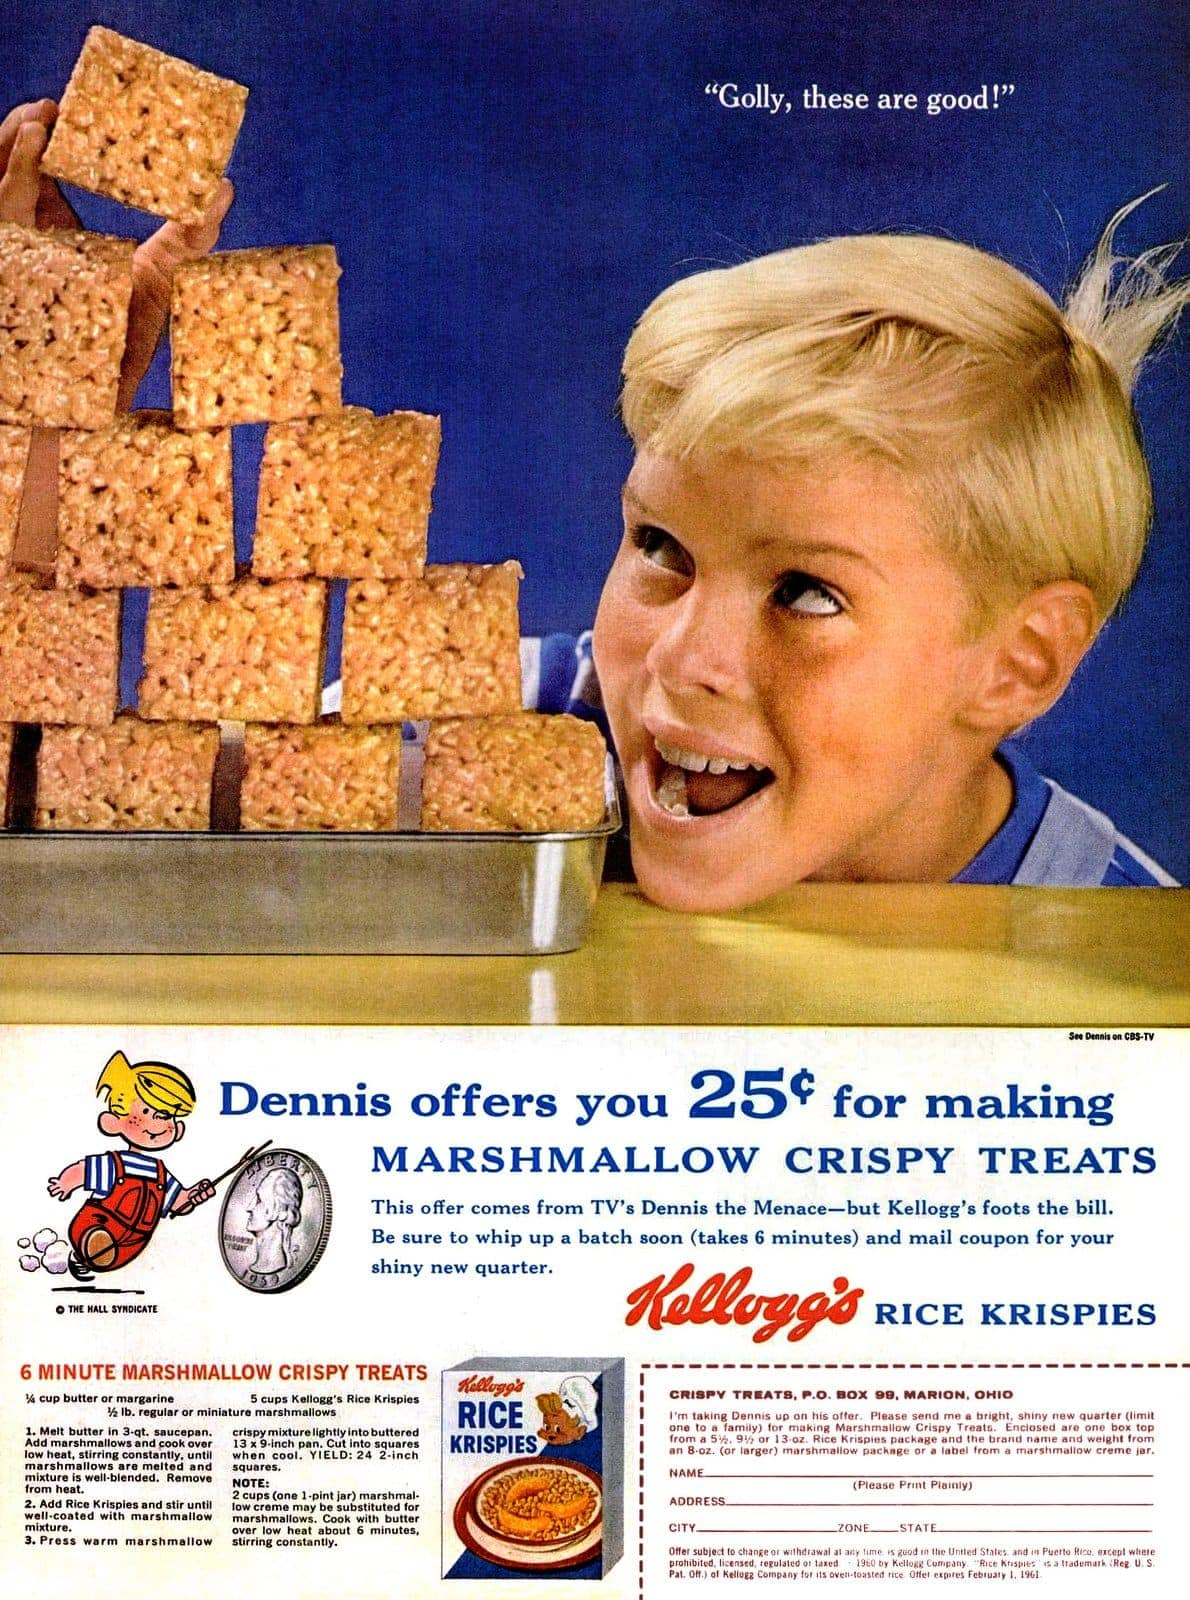 Dennis the Menace with a 6-minute Marshmallow Crispy Treats recipe (1960)